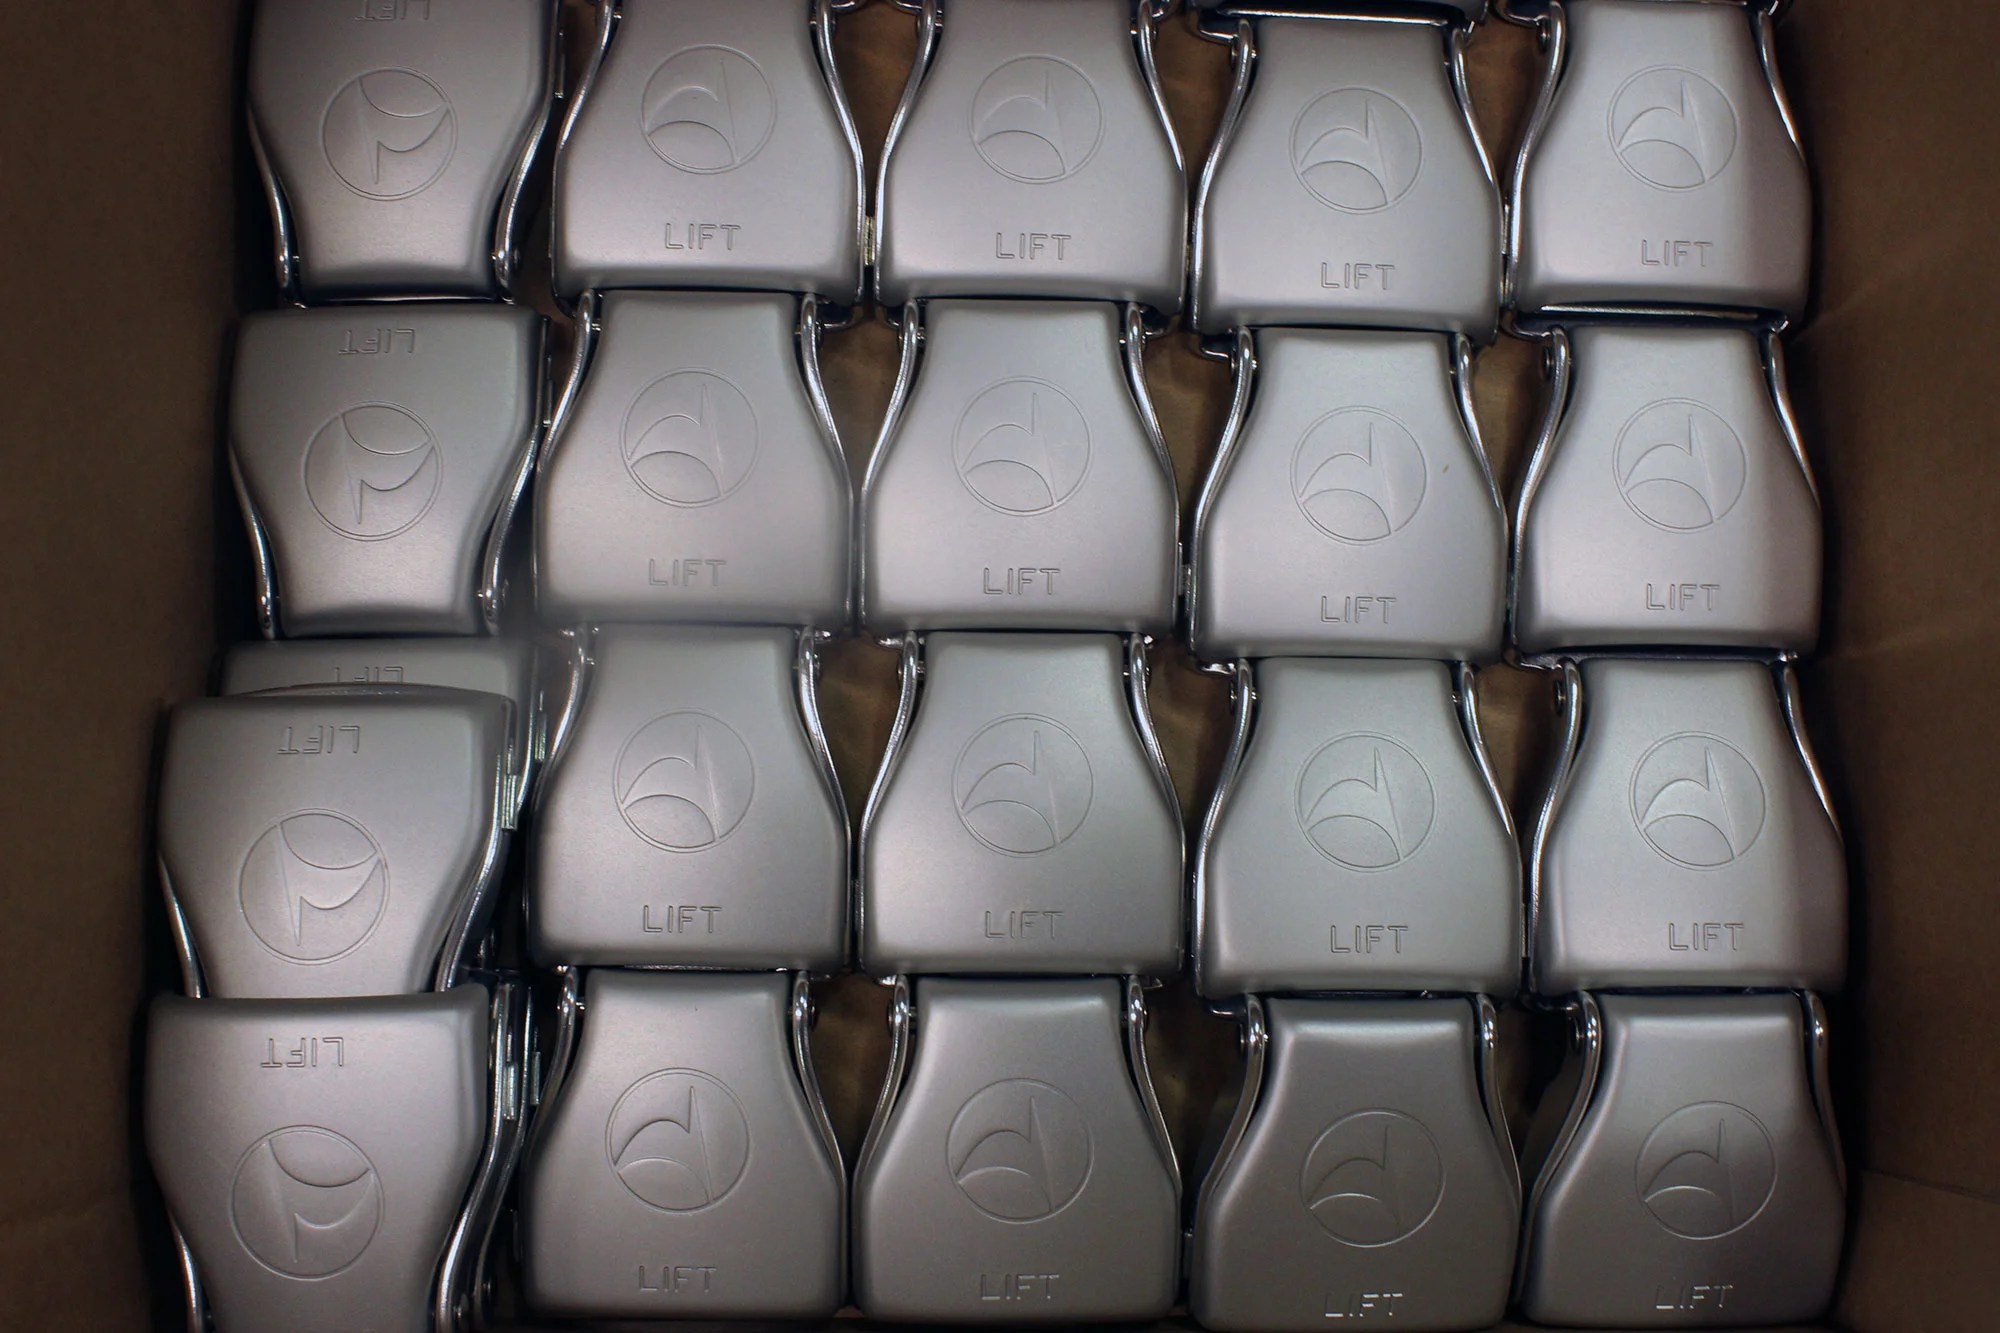 Custom seatbelt buckles for Turkish Airlines, ready for installation. Image by author.